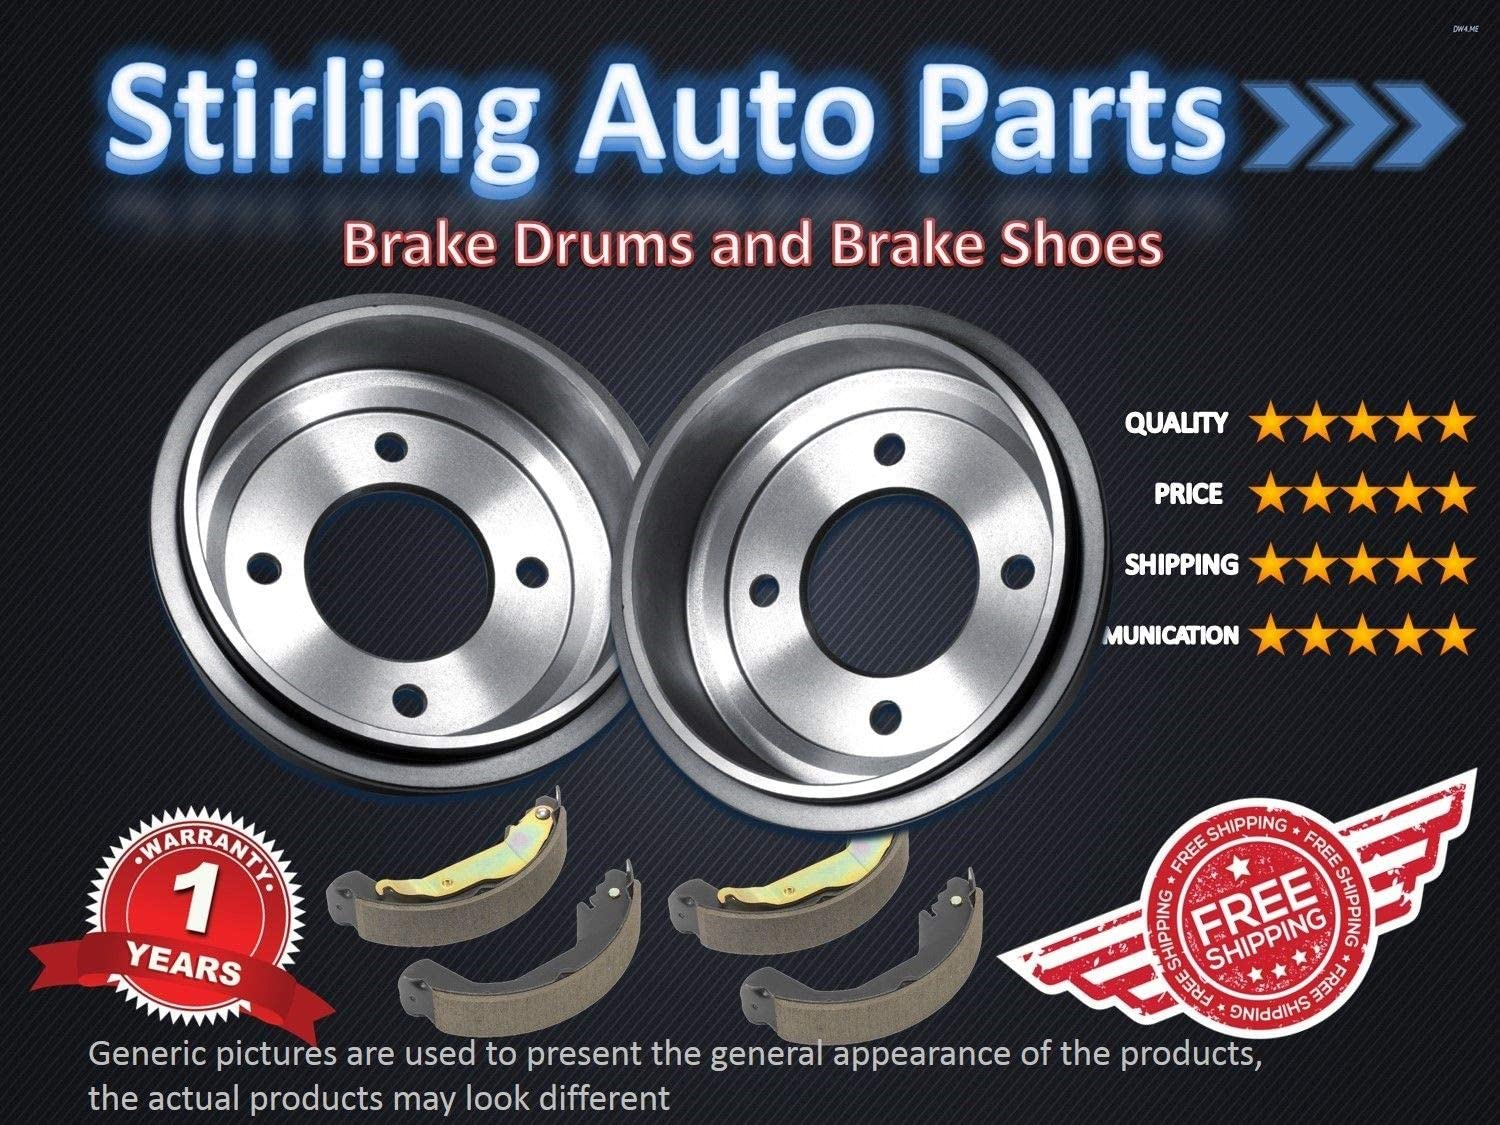 2002 for Ford Focus Rear Premium Quality Brake Drums And Shoes For Both Left and Right One Year Warranty